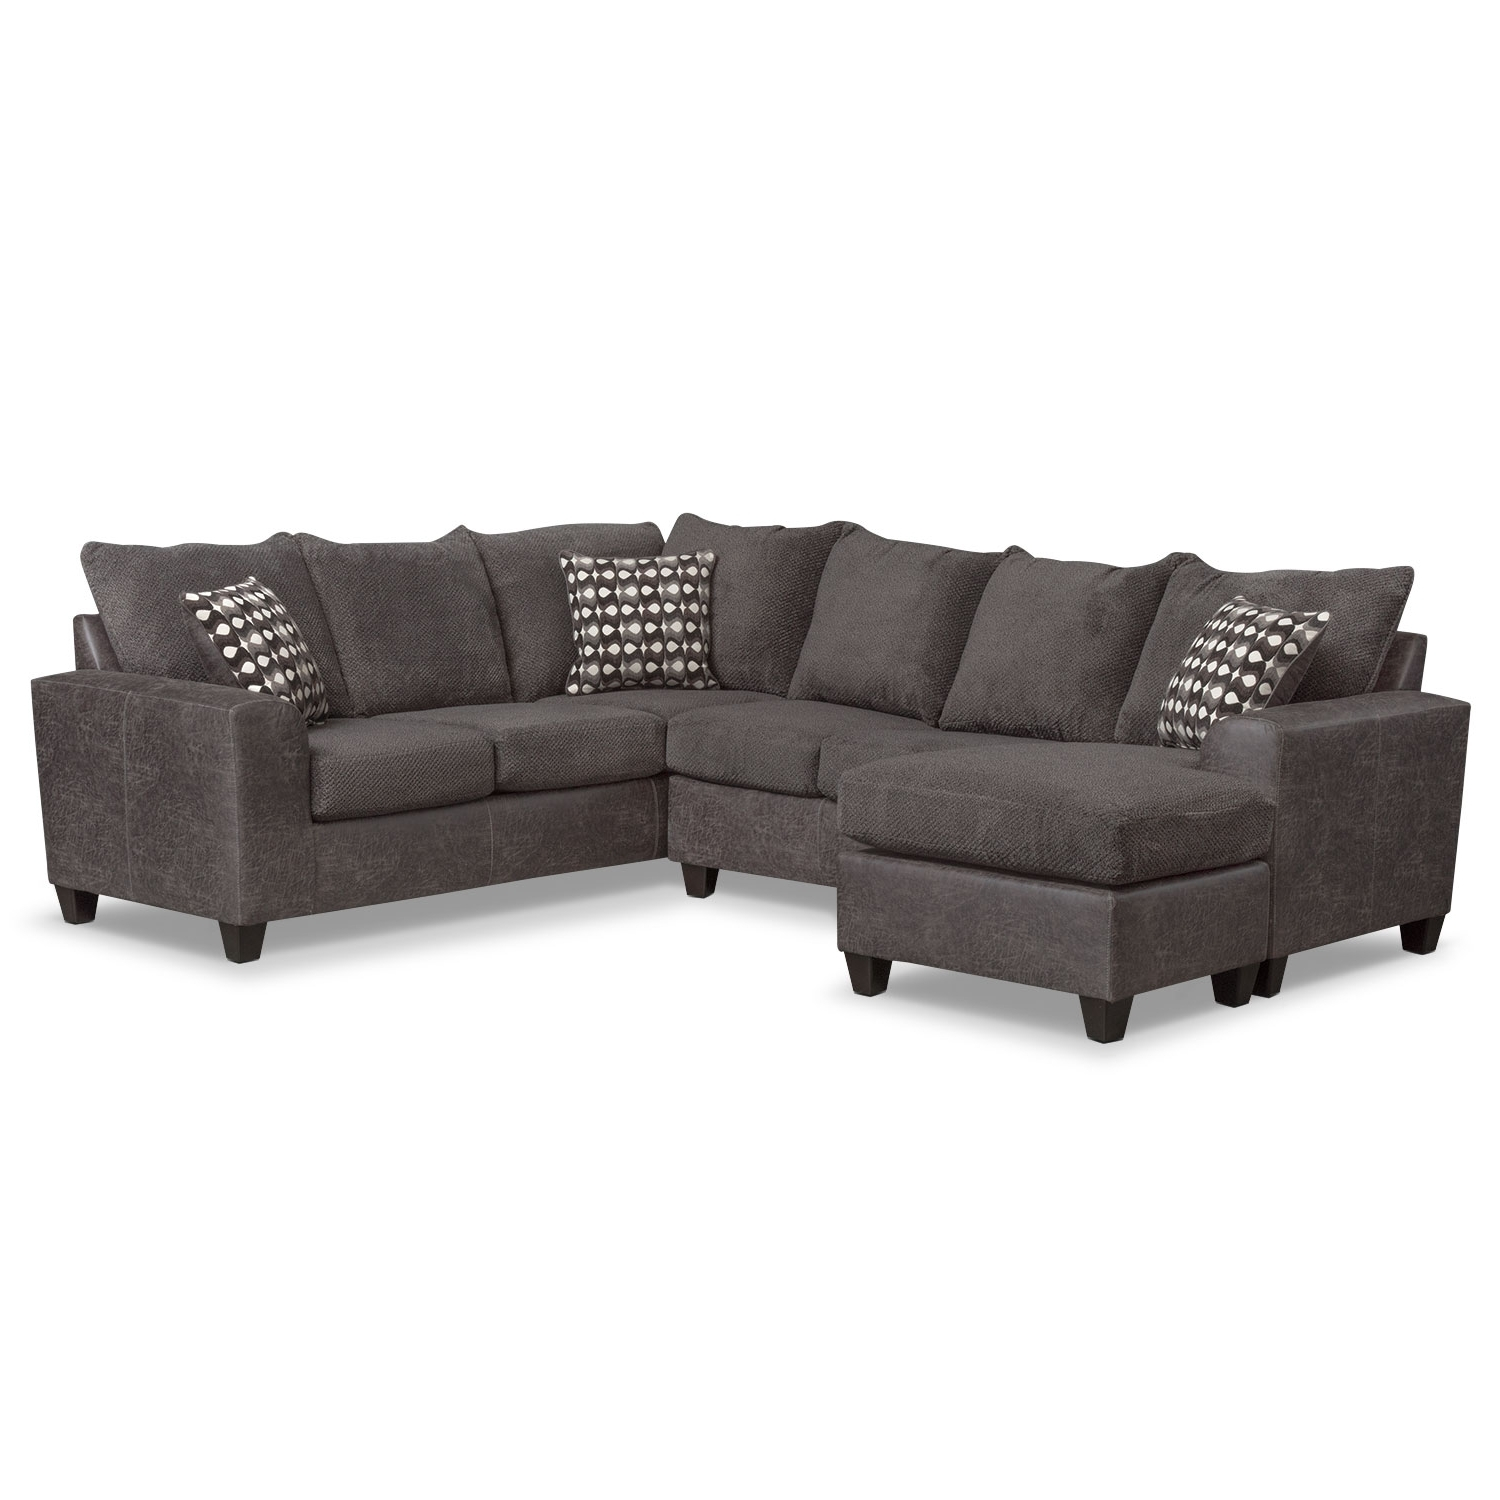 Value City Sectional Sofas For Famous Brando 3 Piece Sectional With Chaise And Swivel Chair Set – Smoke (View 7 of 20)